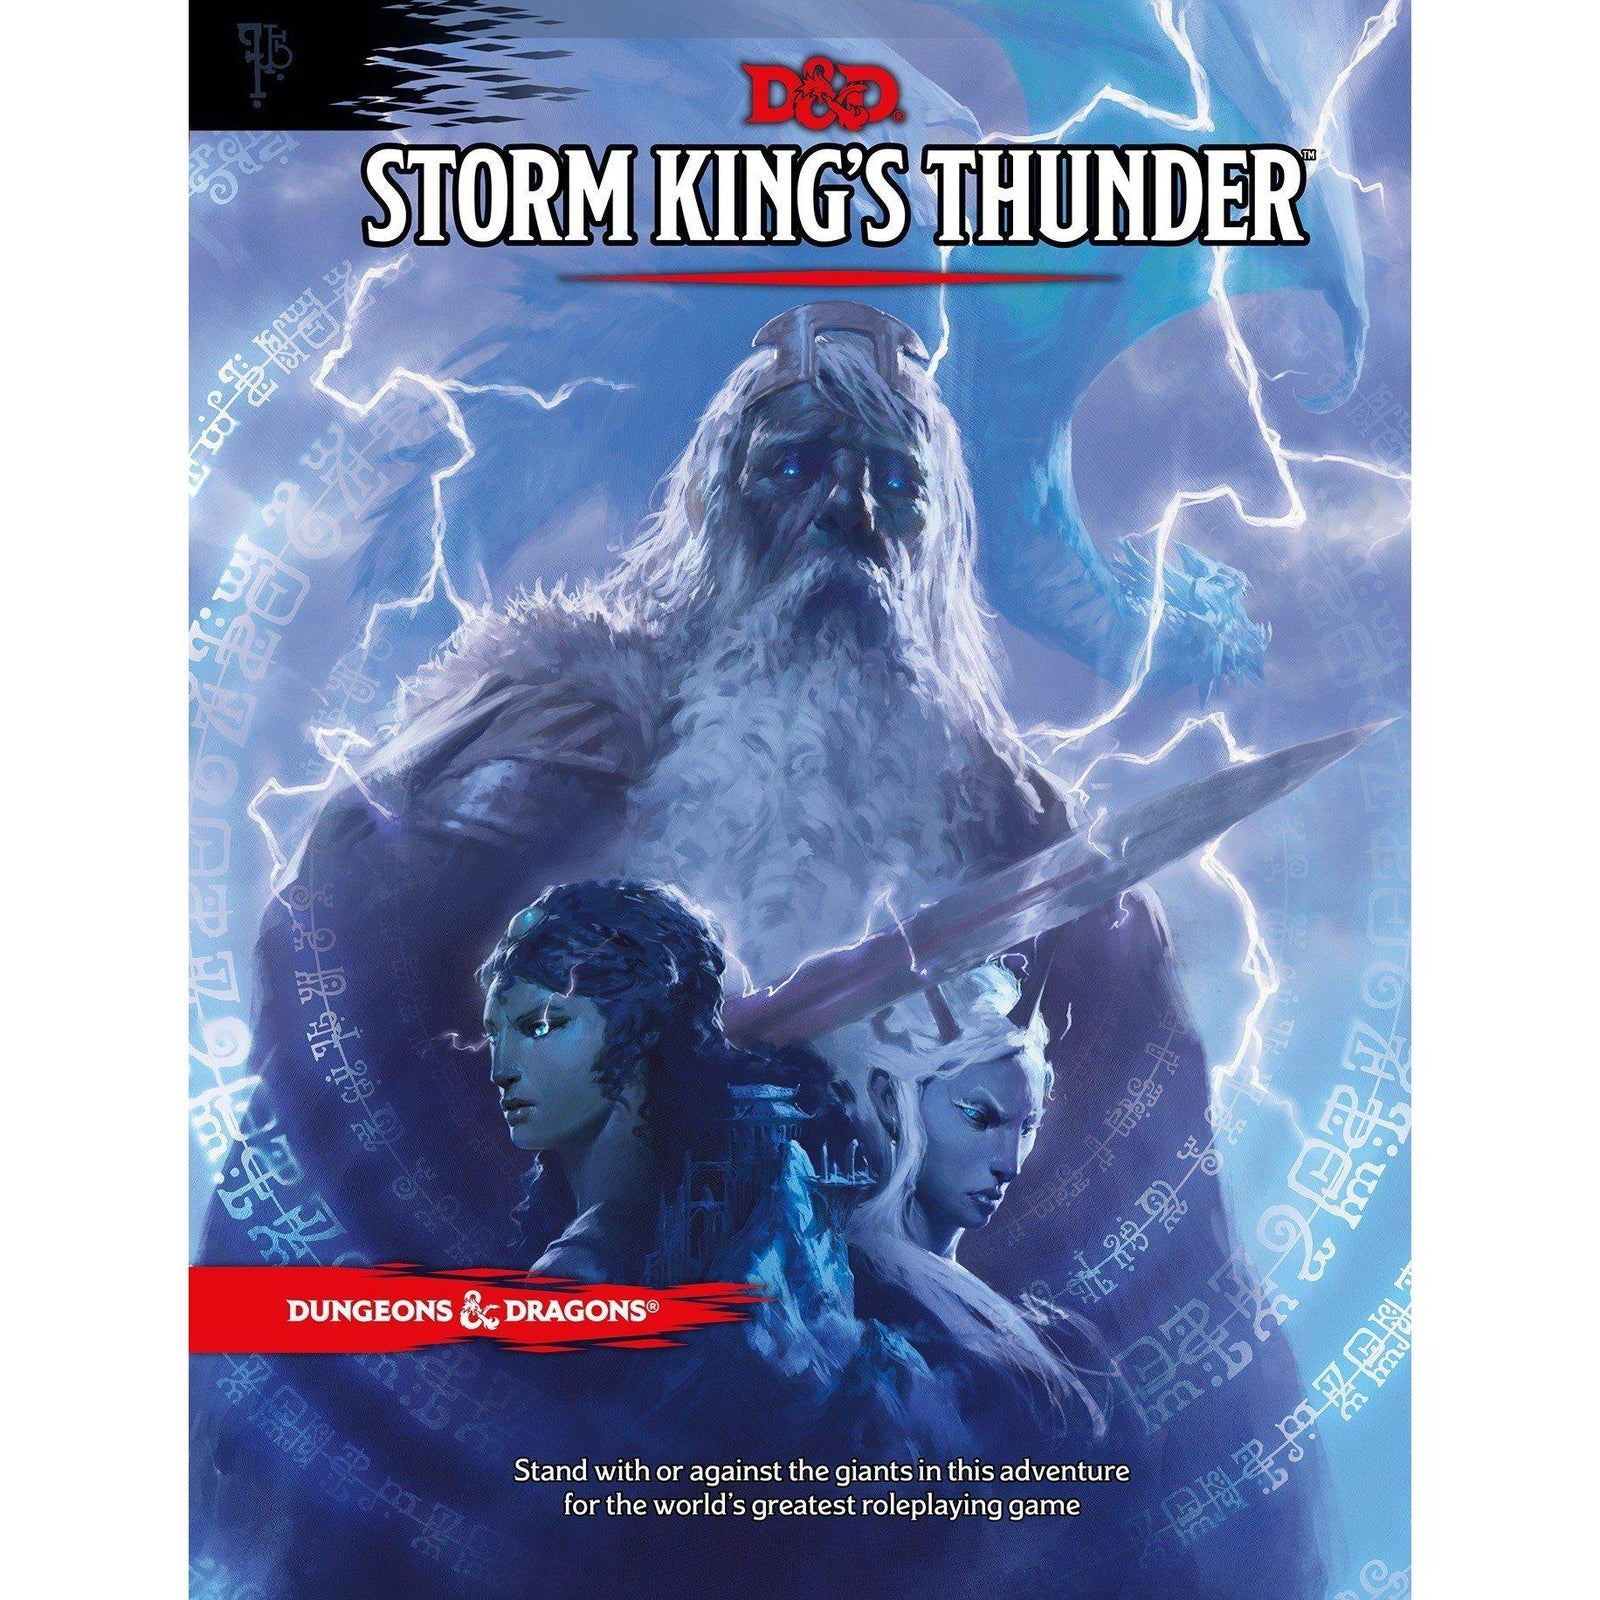 Dungeons and Dragons Storm King's Thunder - The Sword & Board